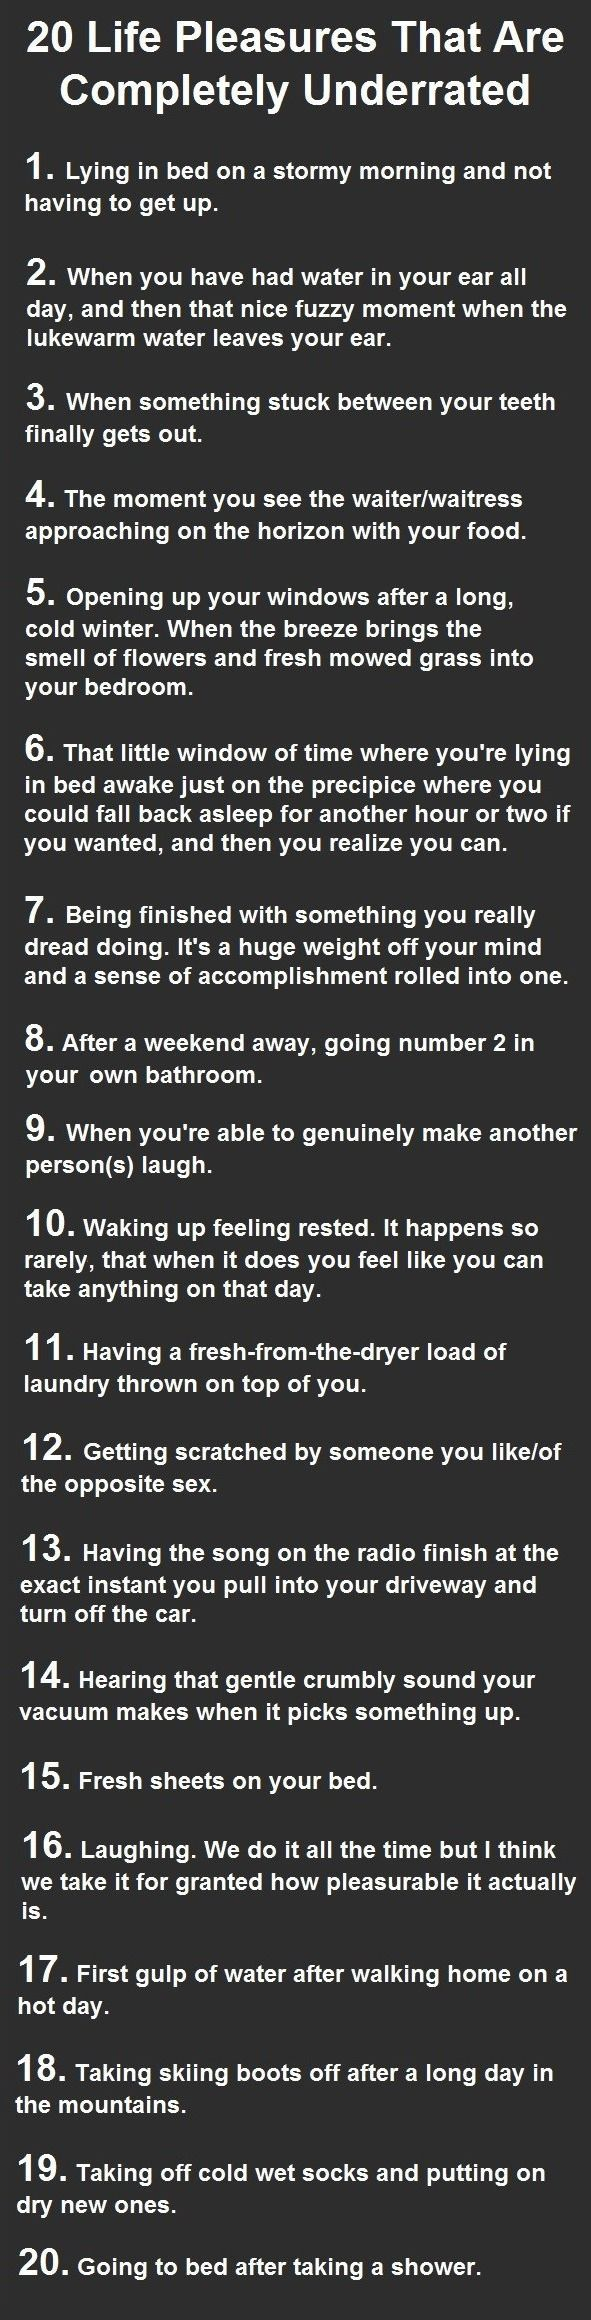 20 life pleasures that are completely underrated.